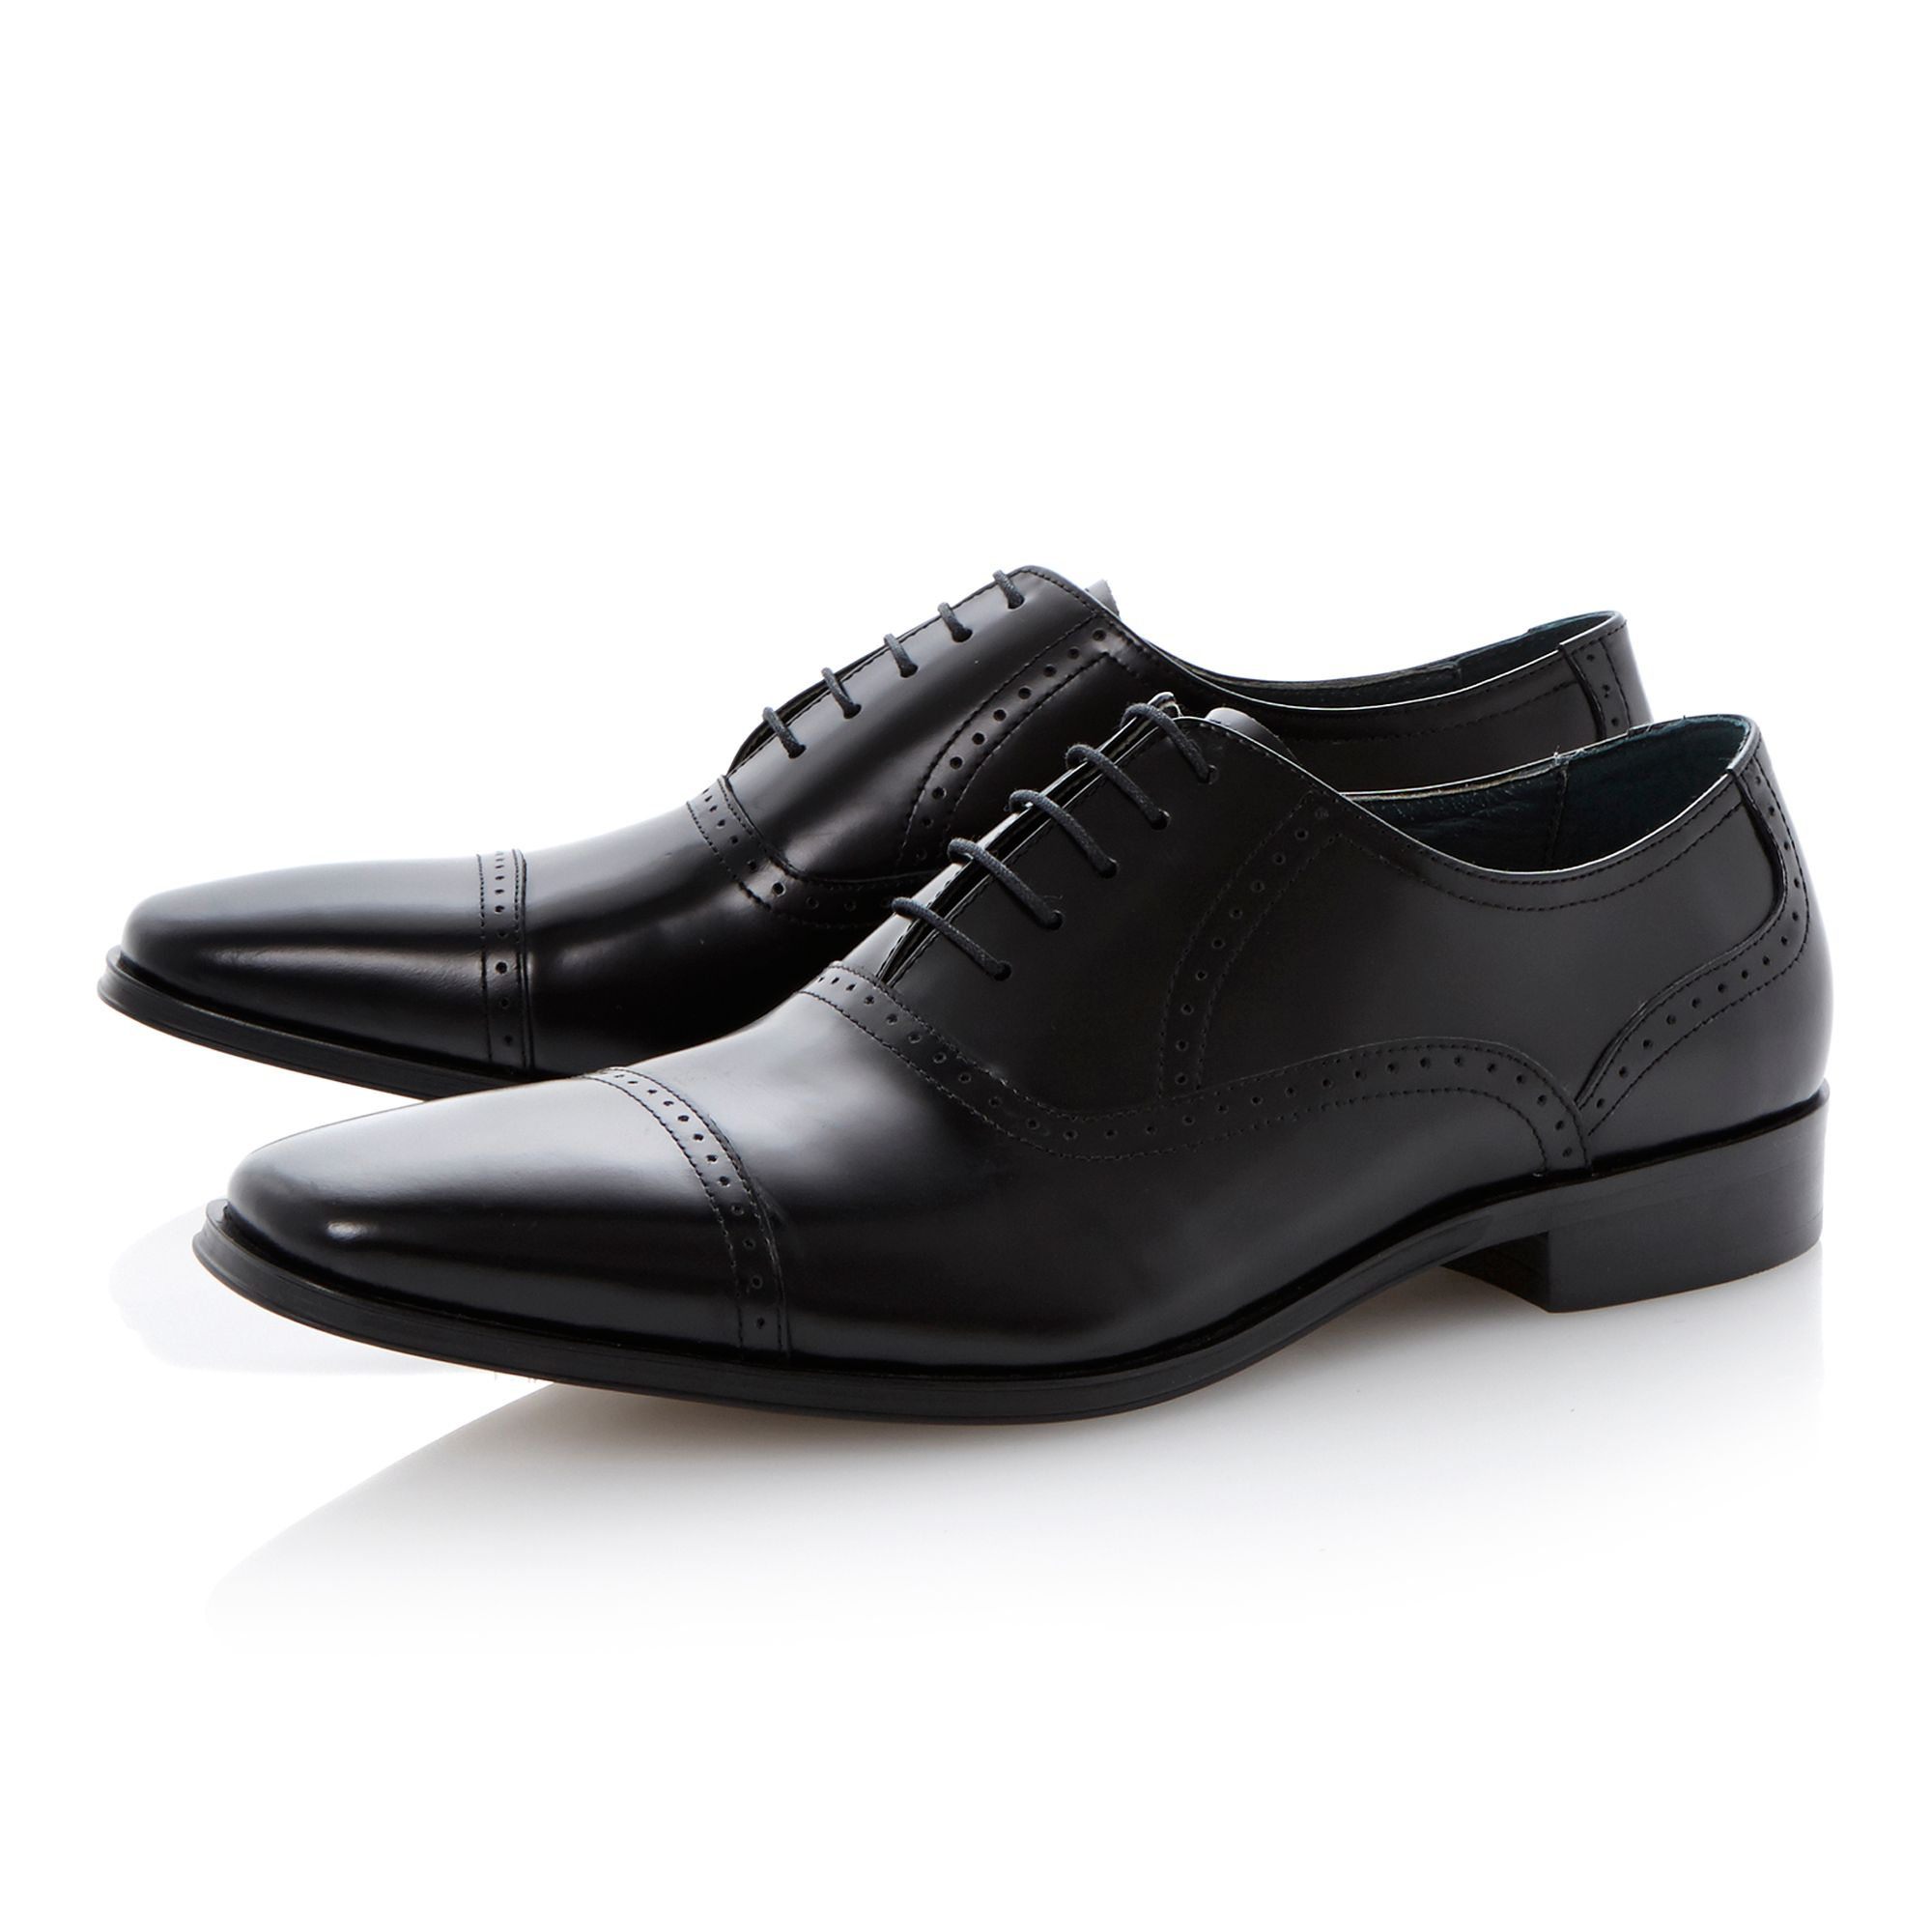 Regency lace up toecap oxford brogues